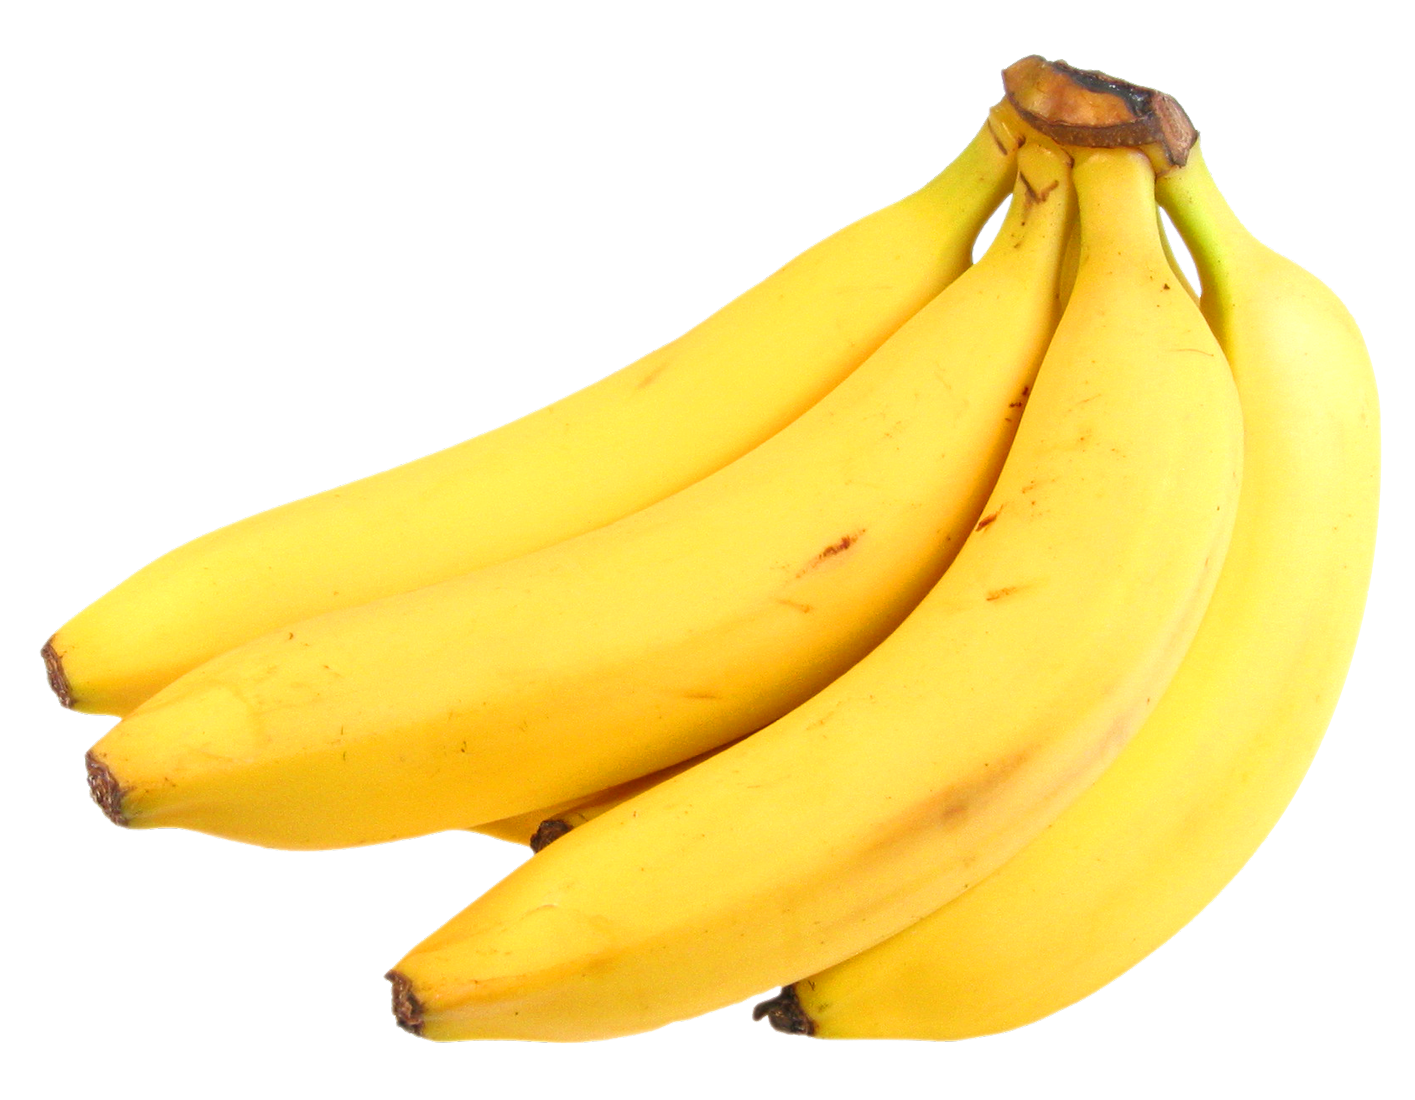 bananas png - photo #8